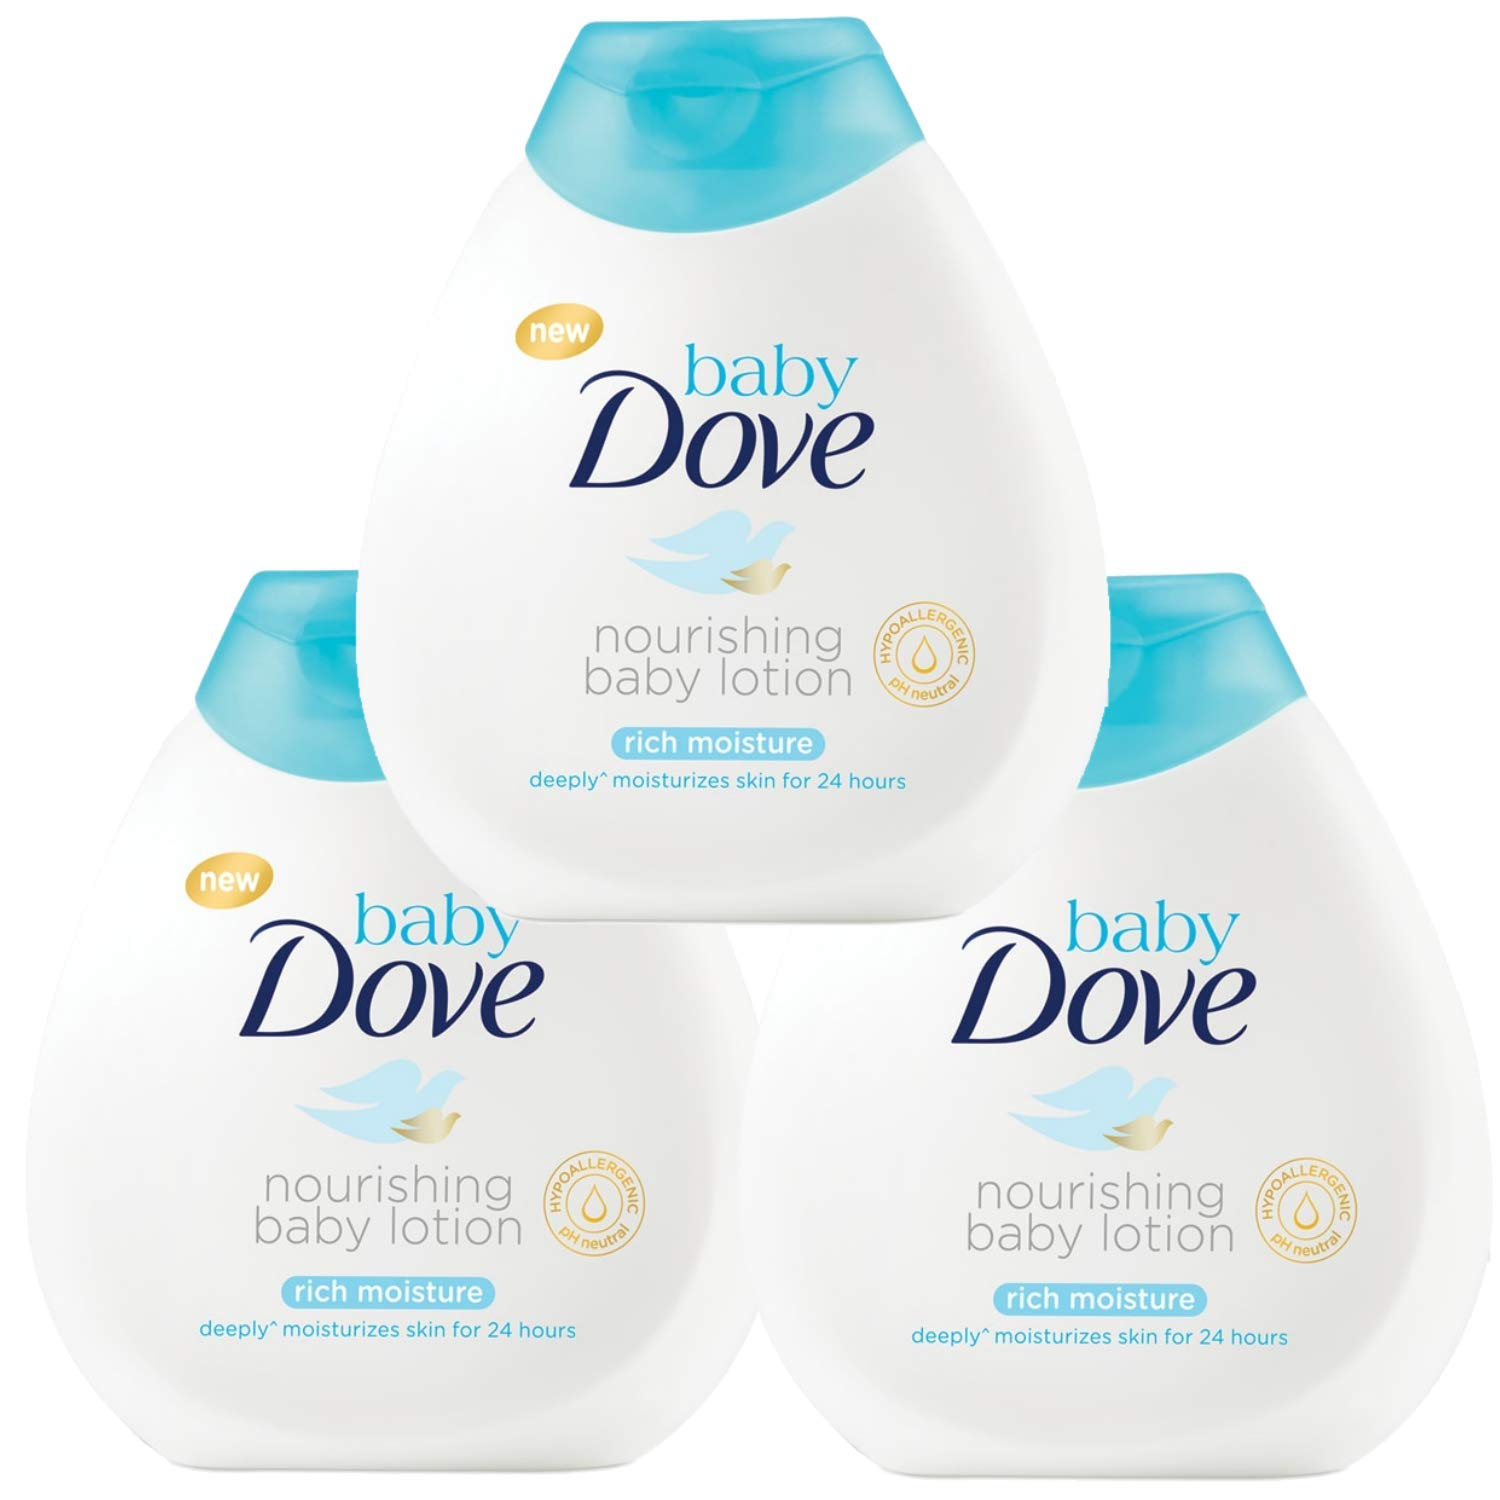 Dove Baby Sensitive Moisture Nourishing Baby Lotion, Fragrance Free - 6.76 Fl Oz / 200 mL x Pack of 3 by Dove